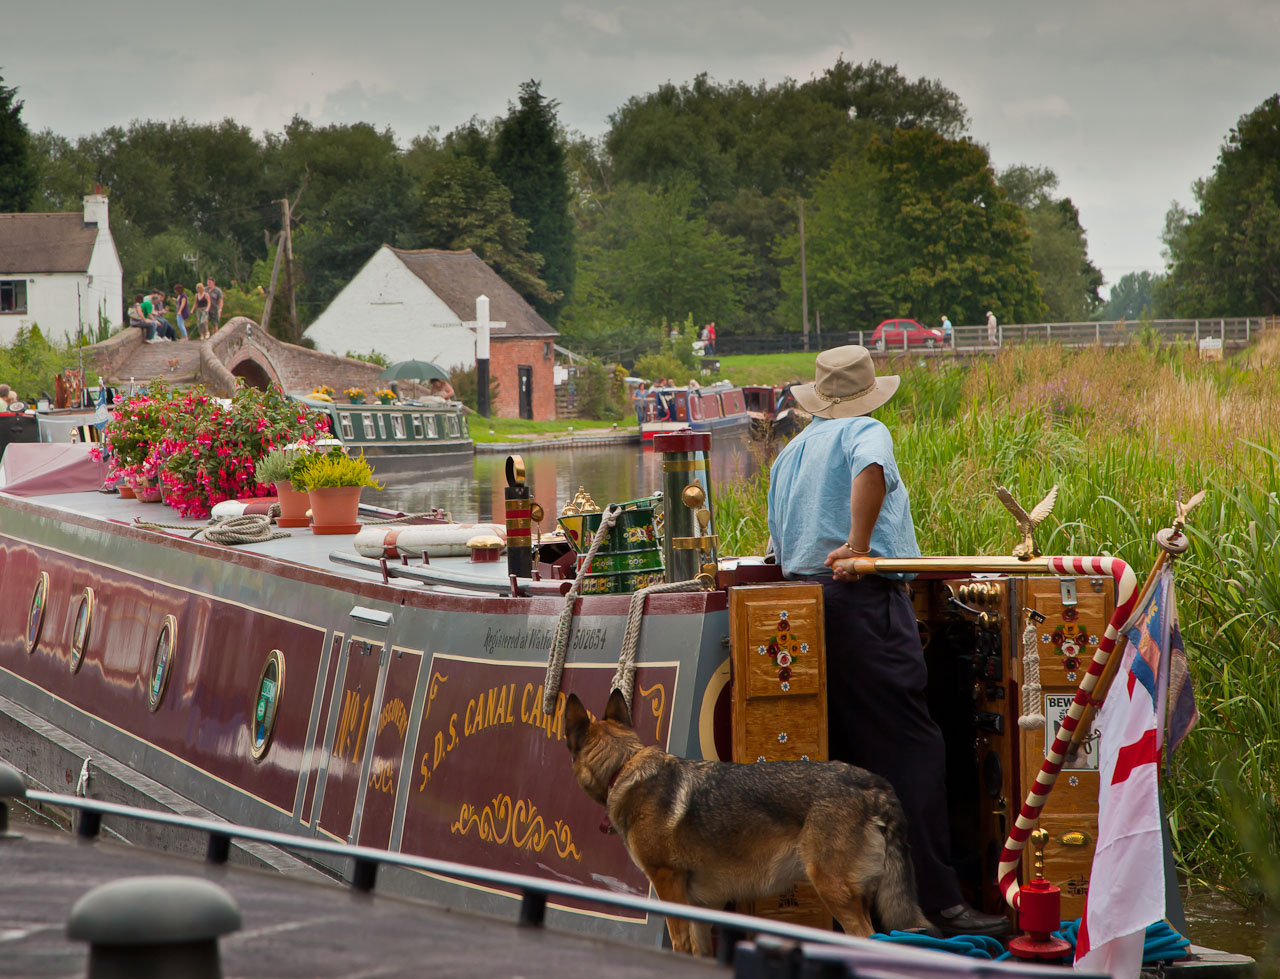 Great Haywood Junction, of the Trent and Mersey with the Staffs and Worcester canals 4 miles East of Stafford. (The Staffs and Worcester bears off to the left from the bridge on the extreme left). This is a very popular place for those cruising to moor for the night and also for visitors to Shugborough Hall which is just across a canal bridge from Great Haywood Village. There is a delightful coffee shop/cafe by the bridge which overlooks the canal.